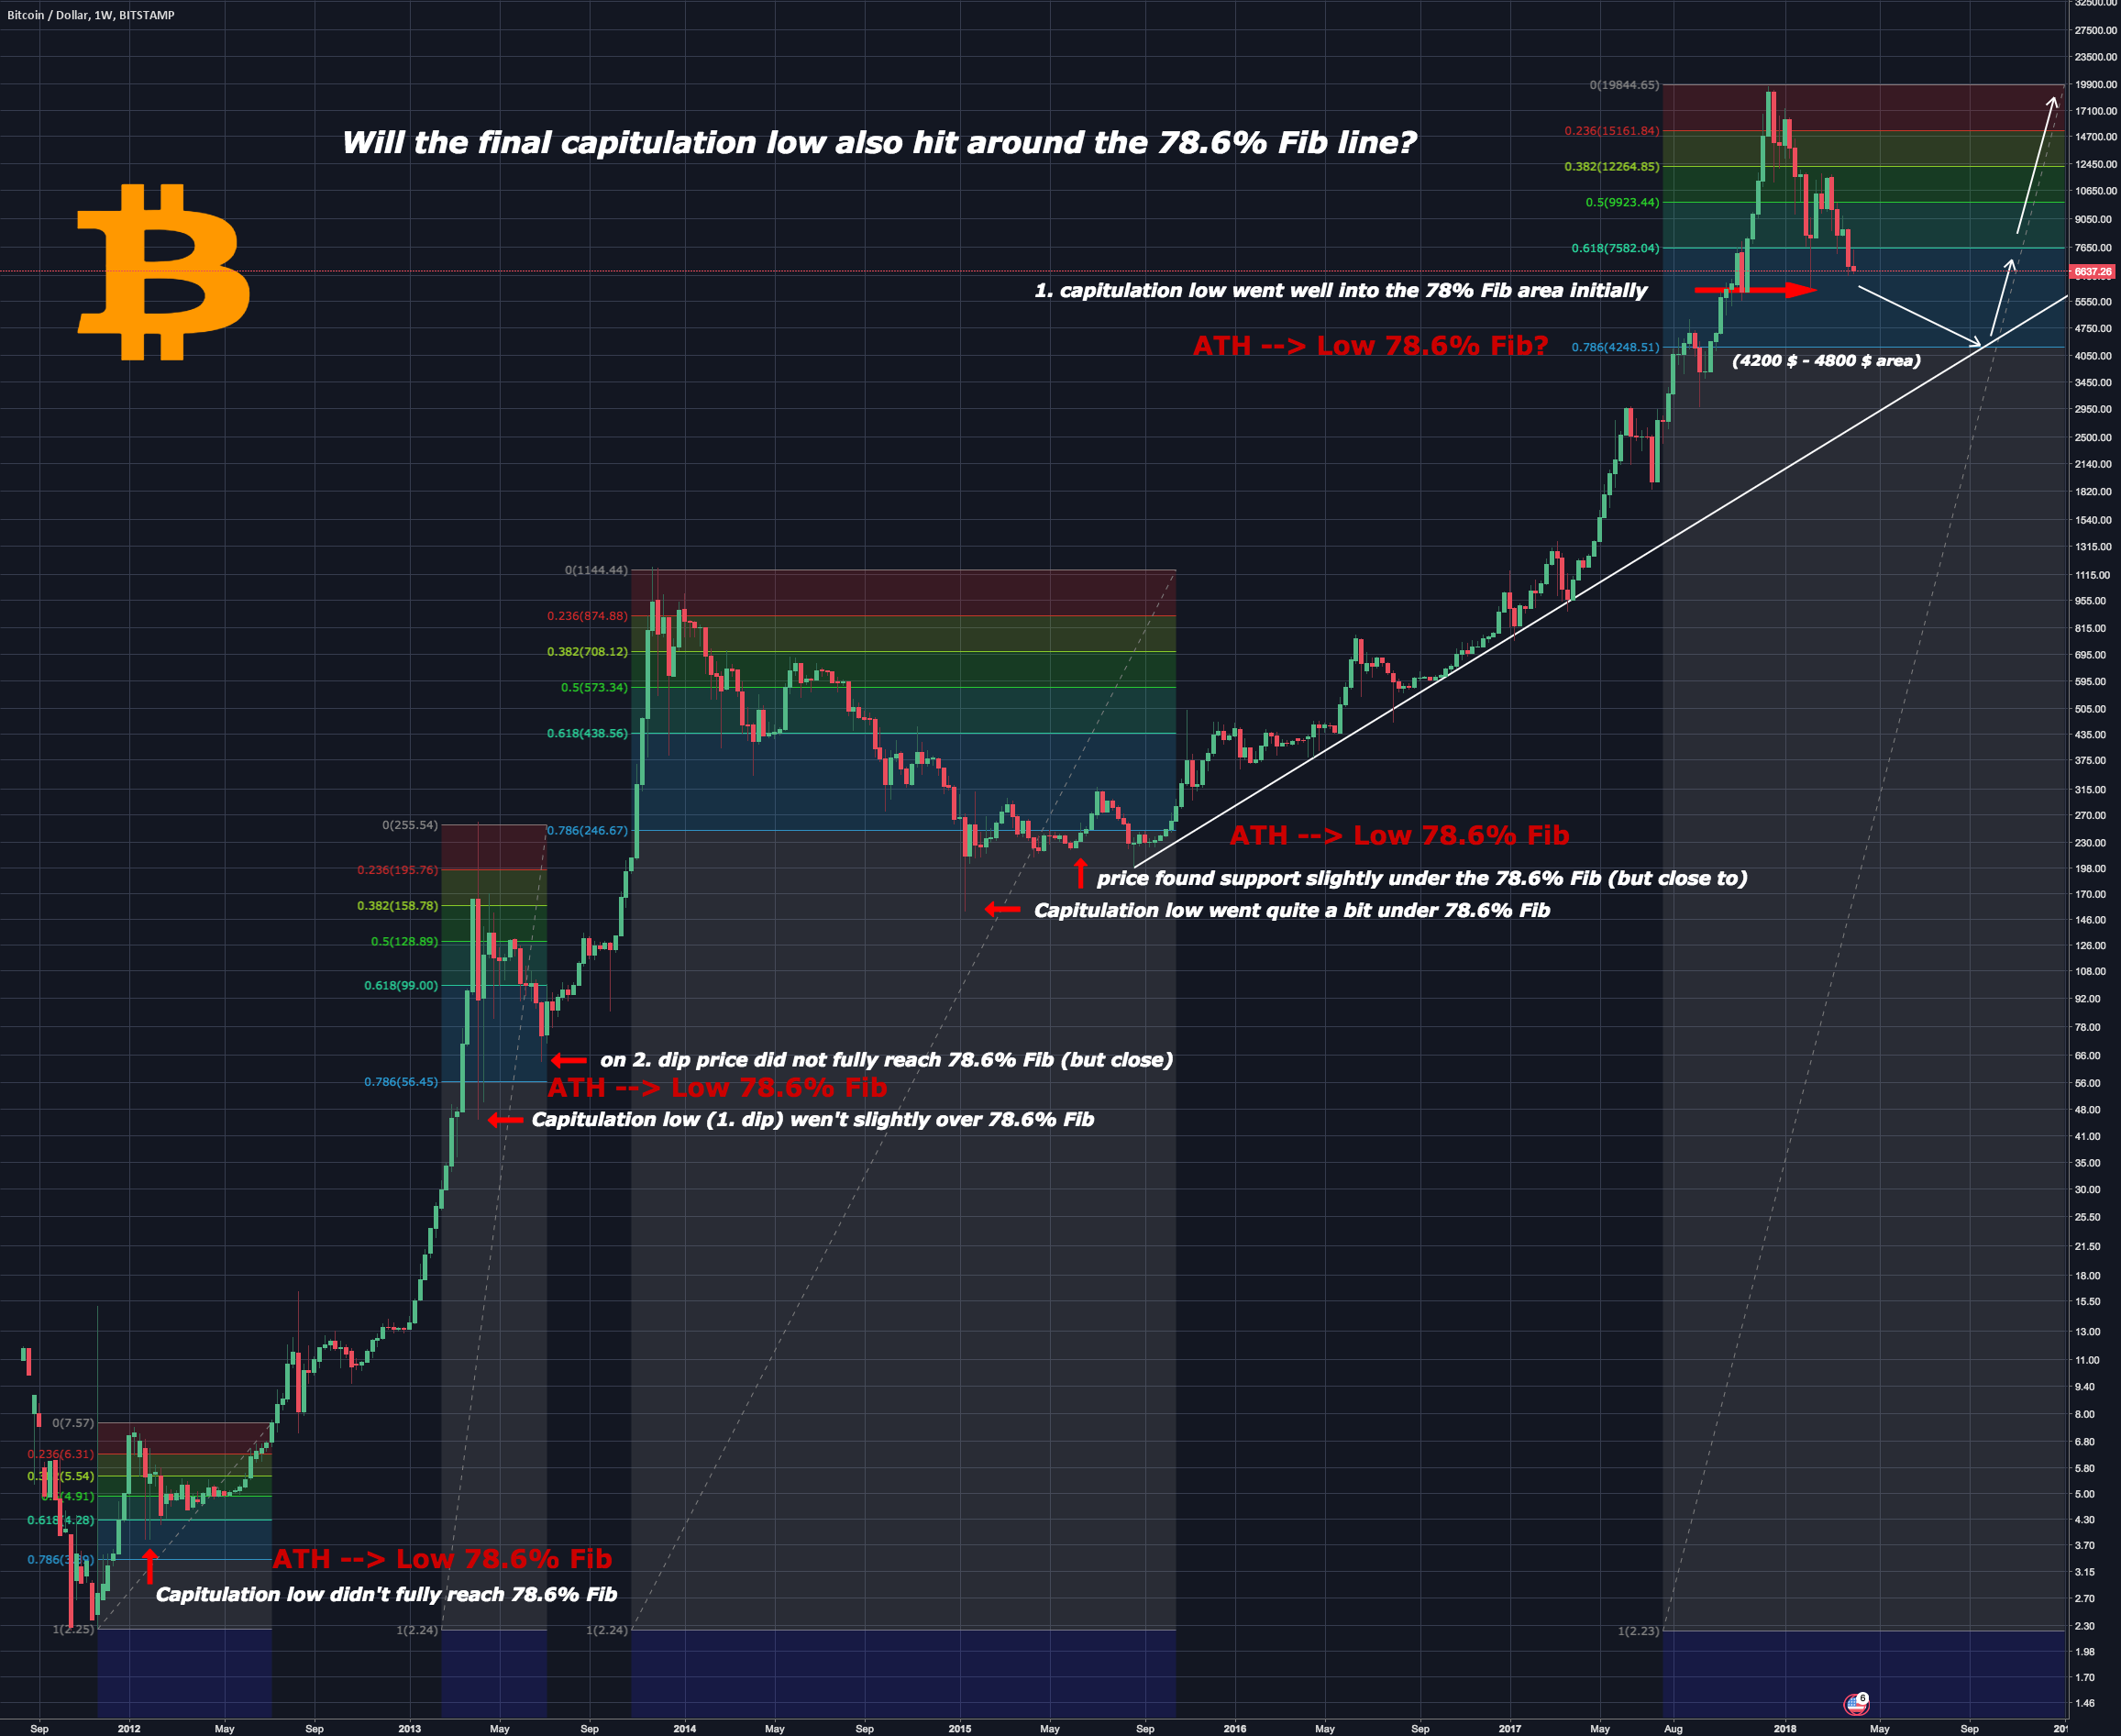 Will the final capitulation low also hit around the 78.6% Fib?